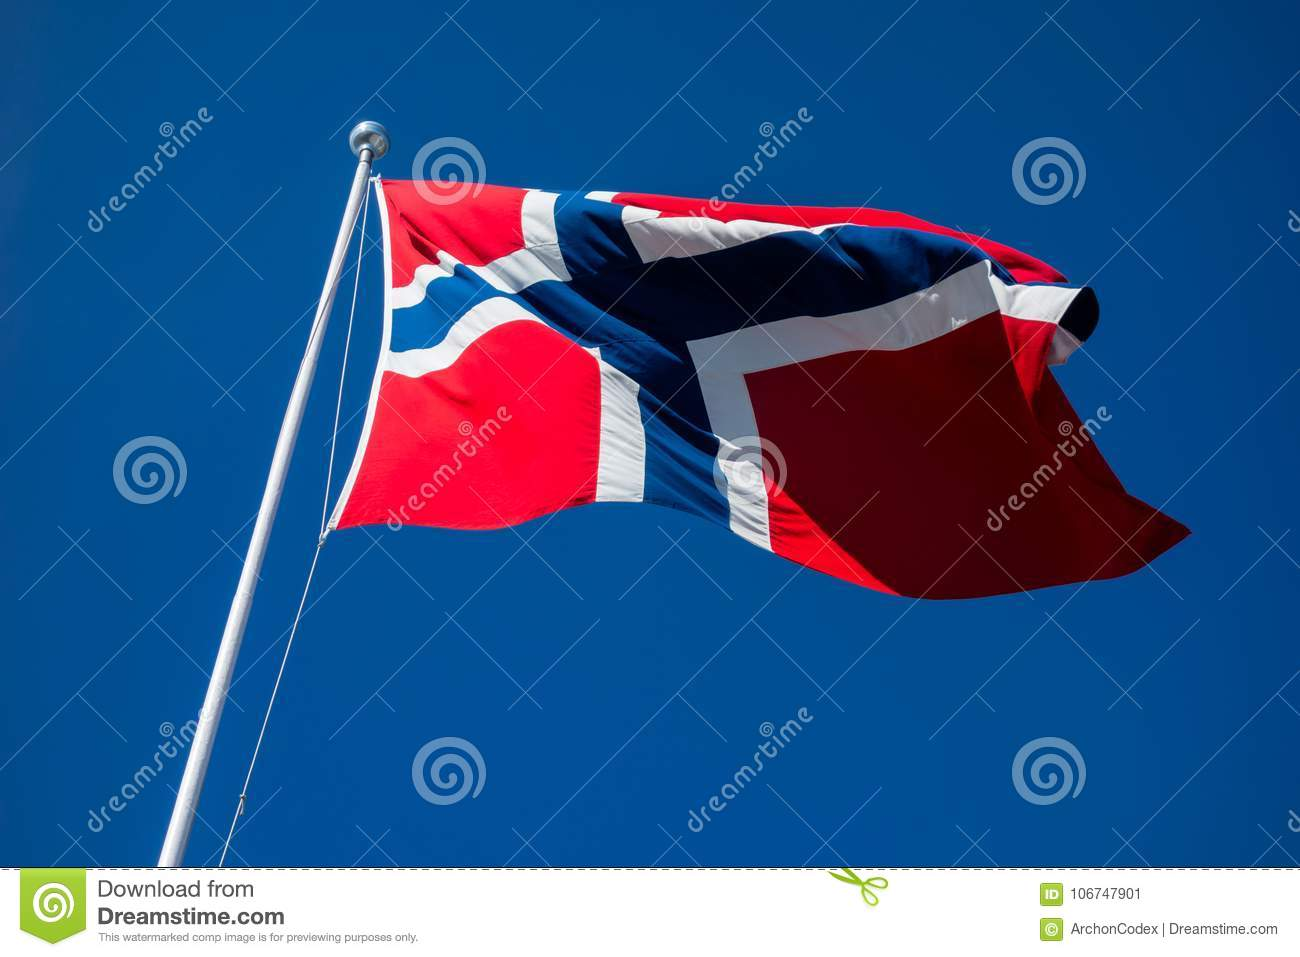 Flag of Norway flapping in wind.